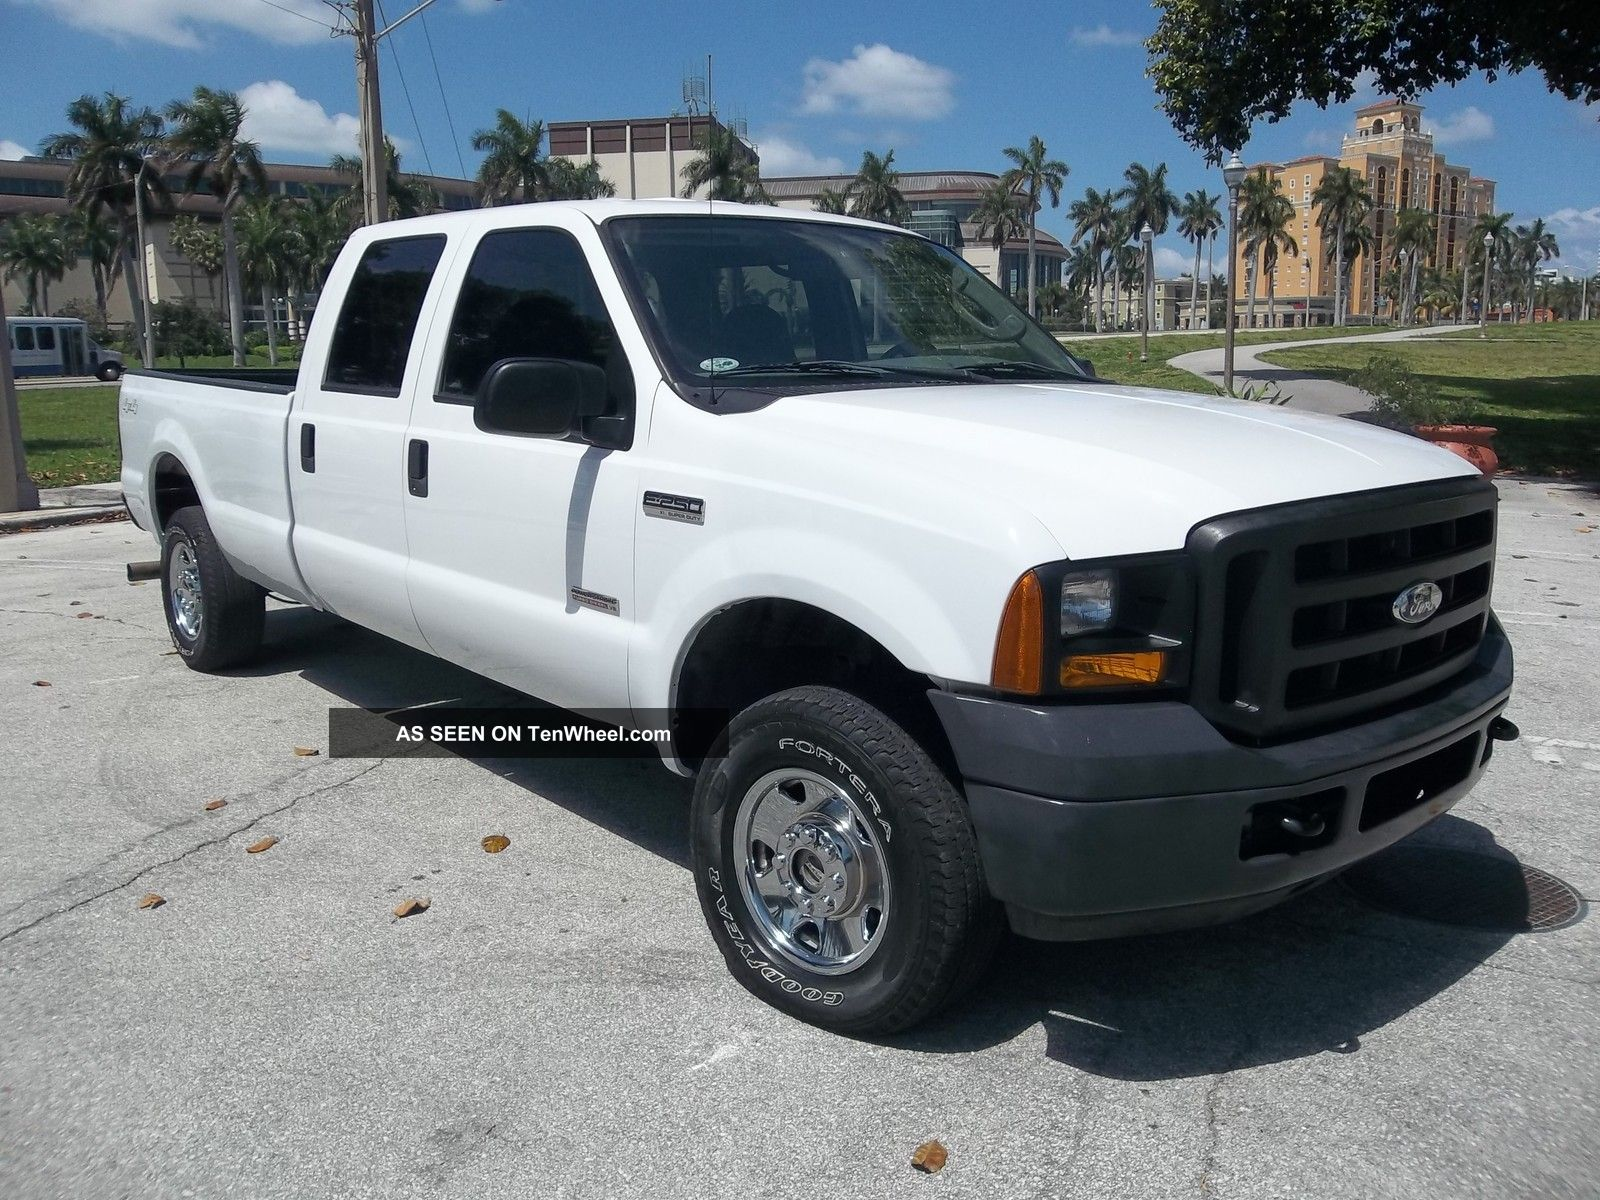 2006 ford f250 superduty crewcab 4x4 diesel xl. Black Bedroom Furniture Sets. Home Design Ideas